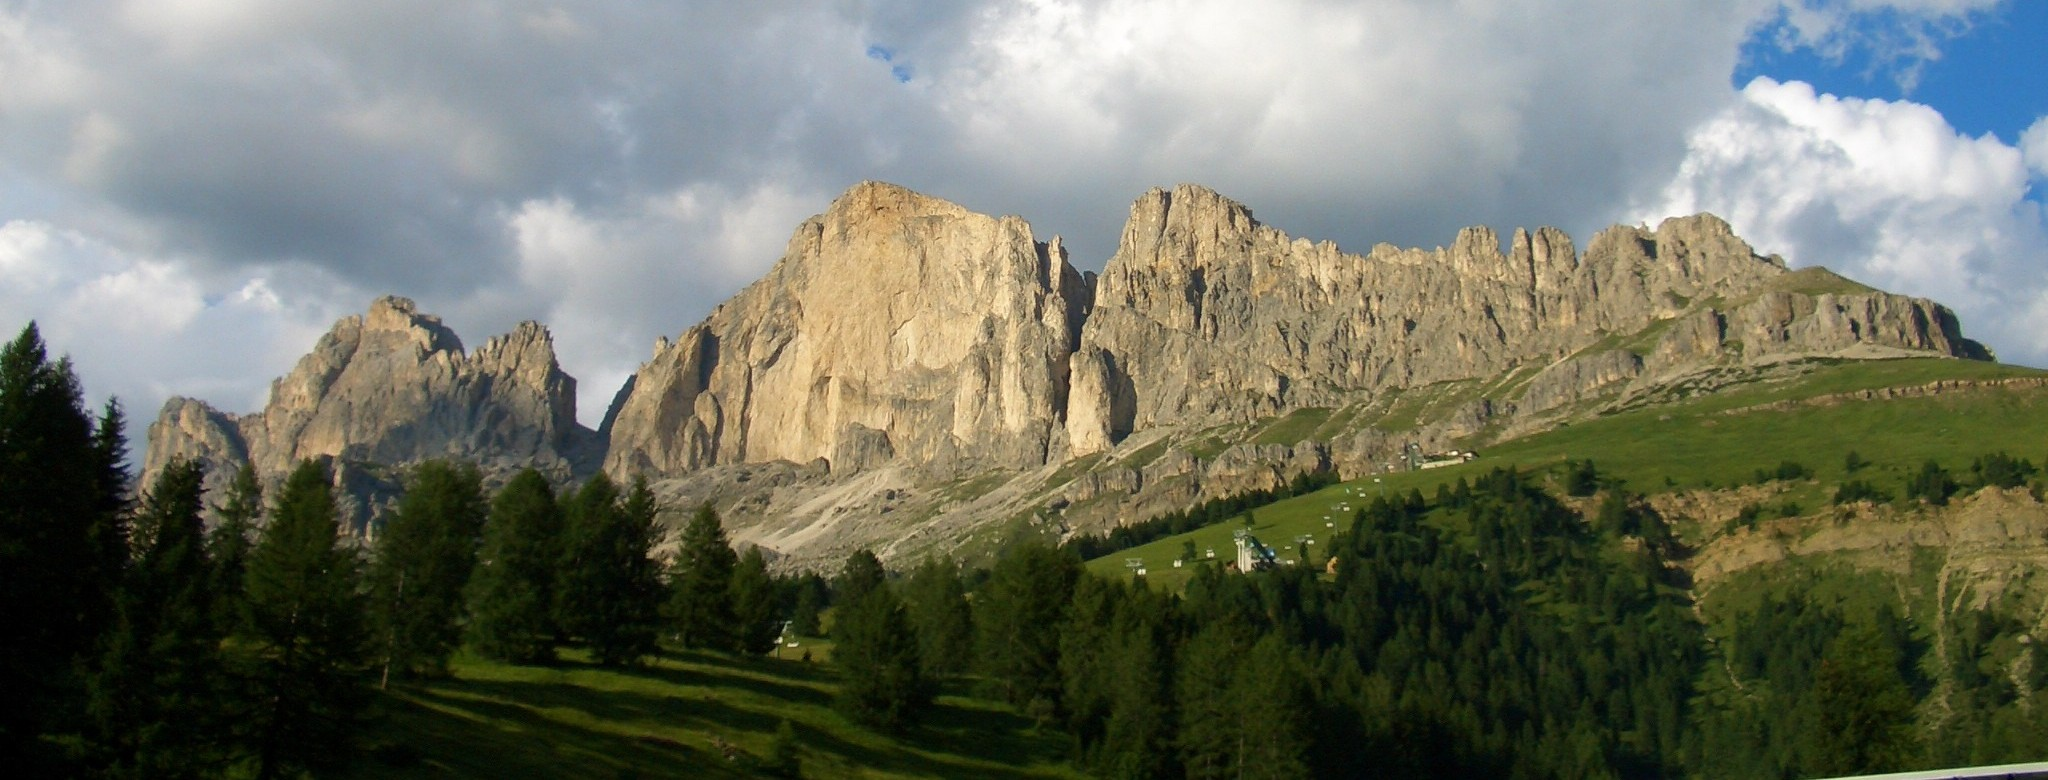 Dolomites panorama from the Karer Pass.